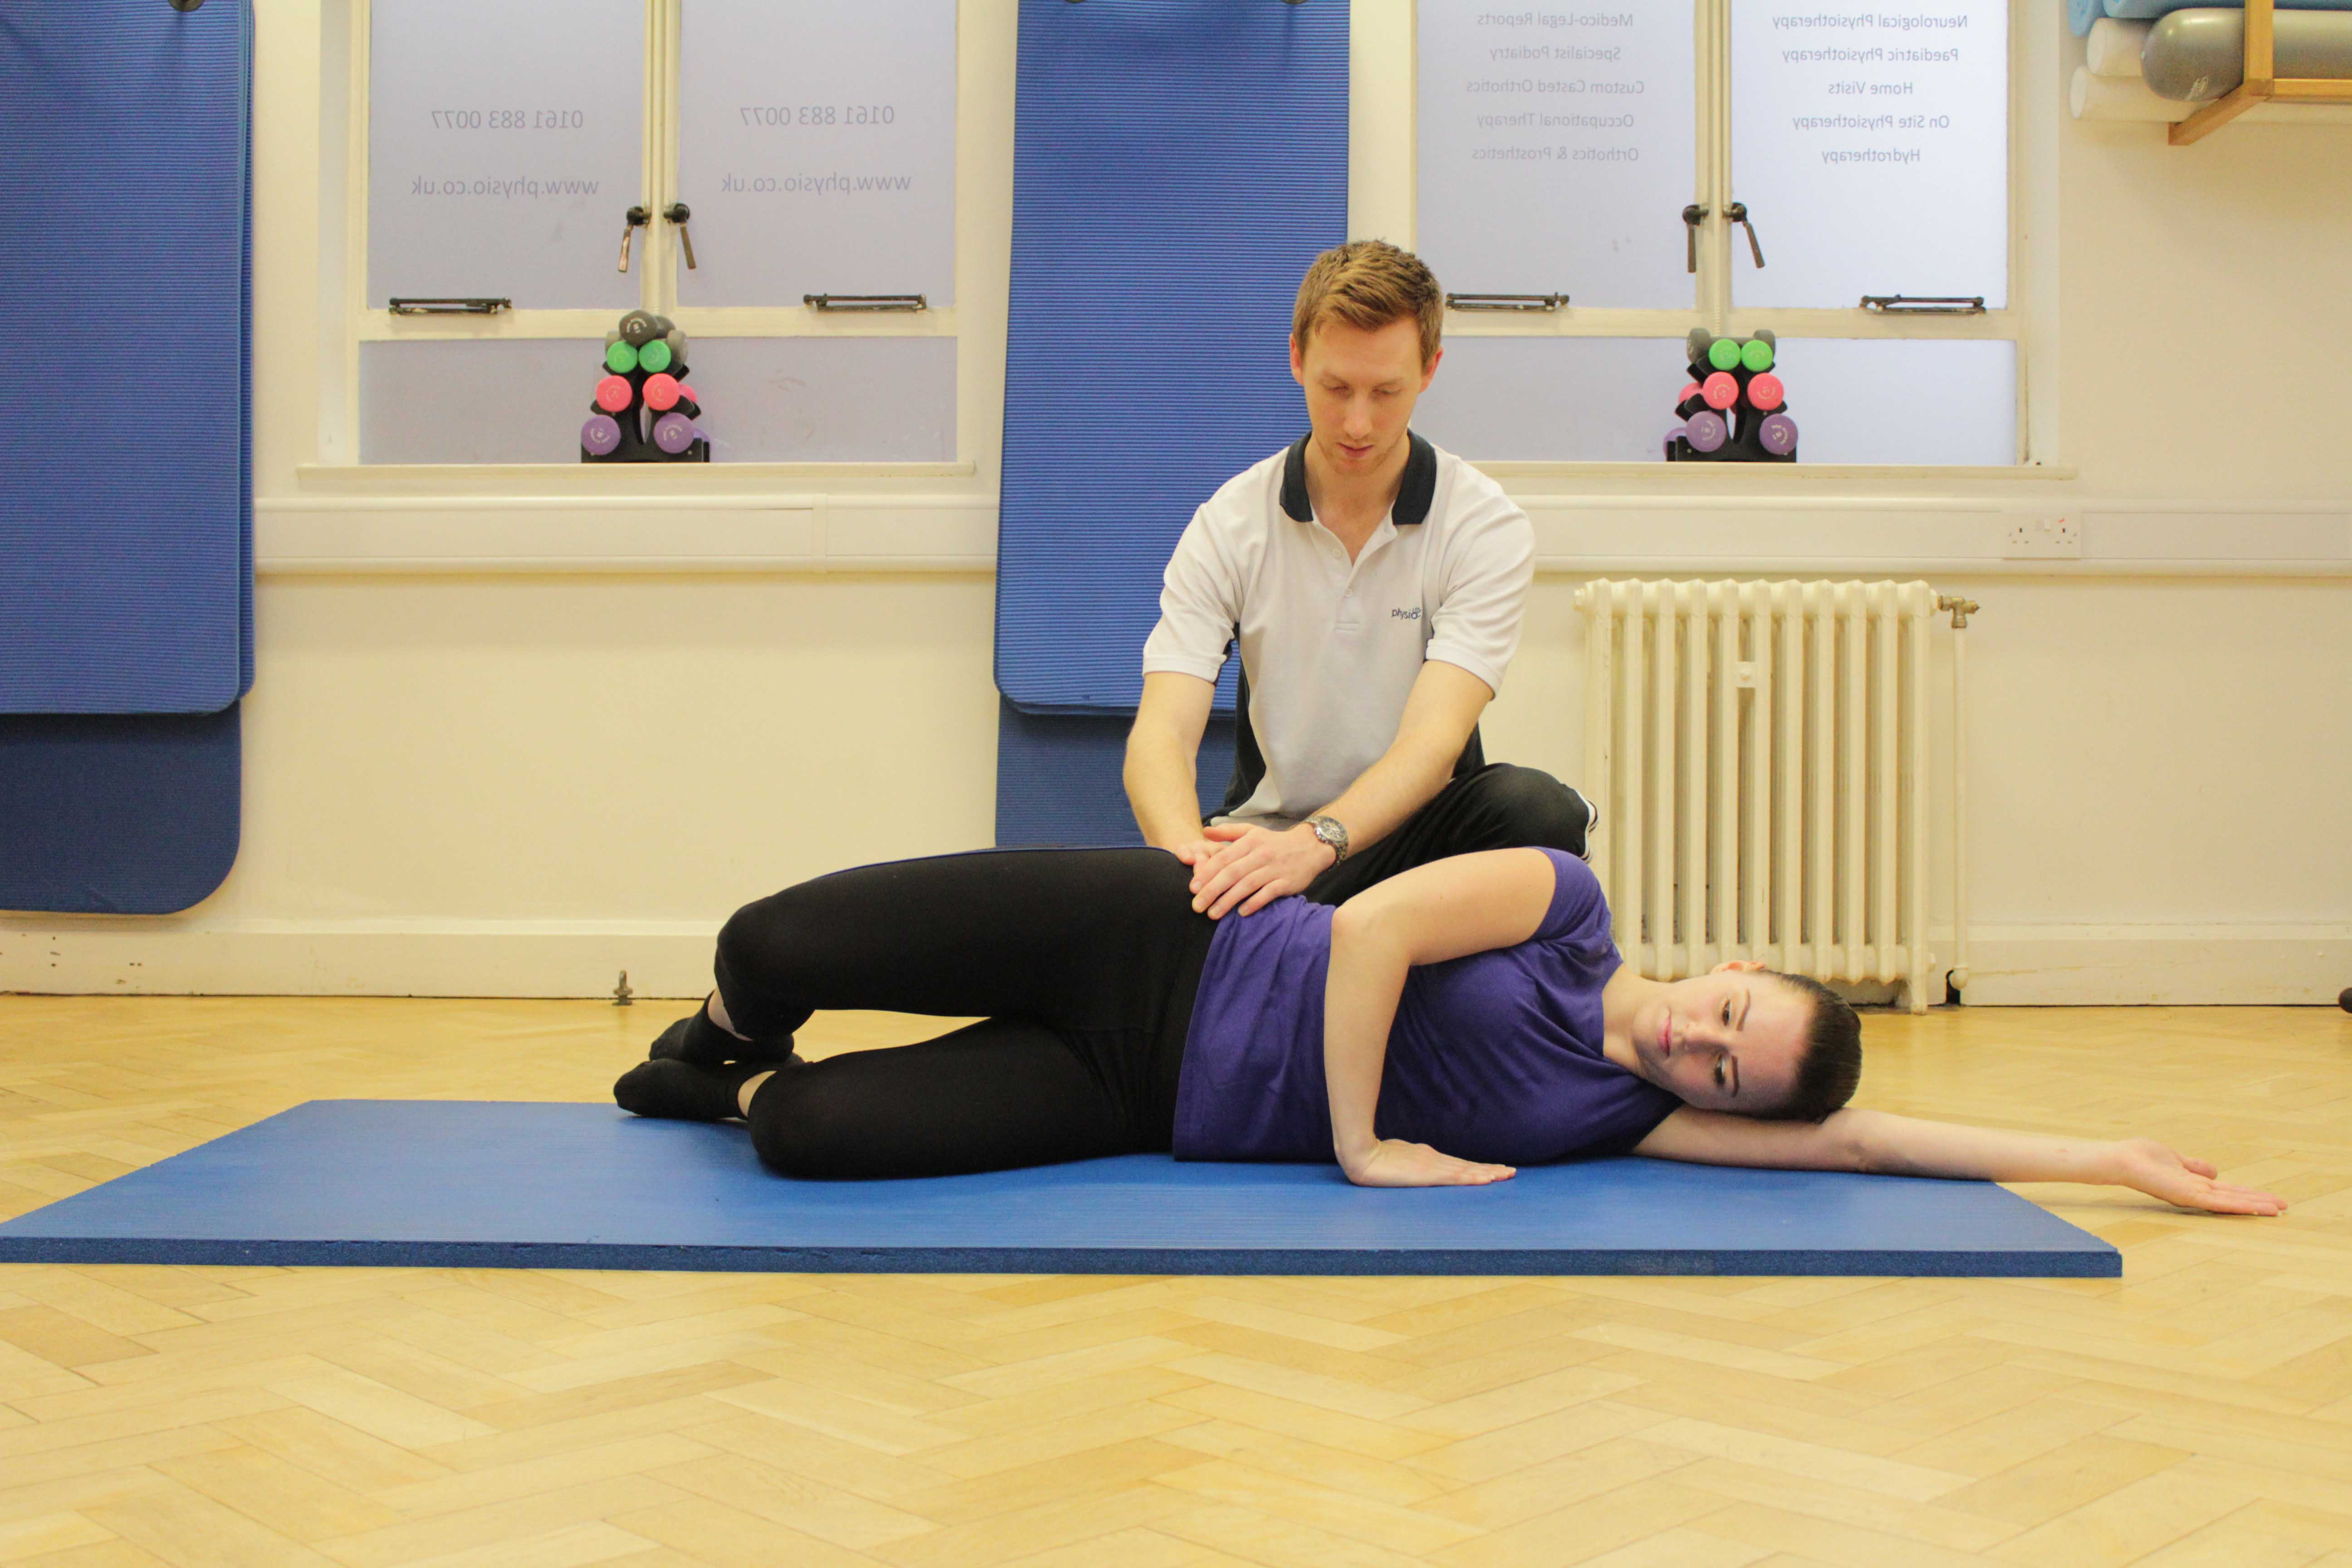 Strengthening exercises for the gluteus muscles supervised by a therapist